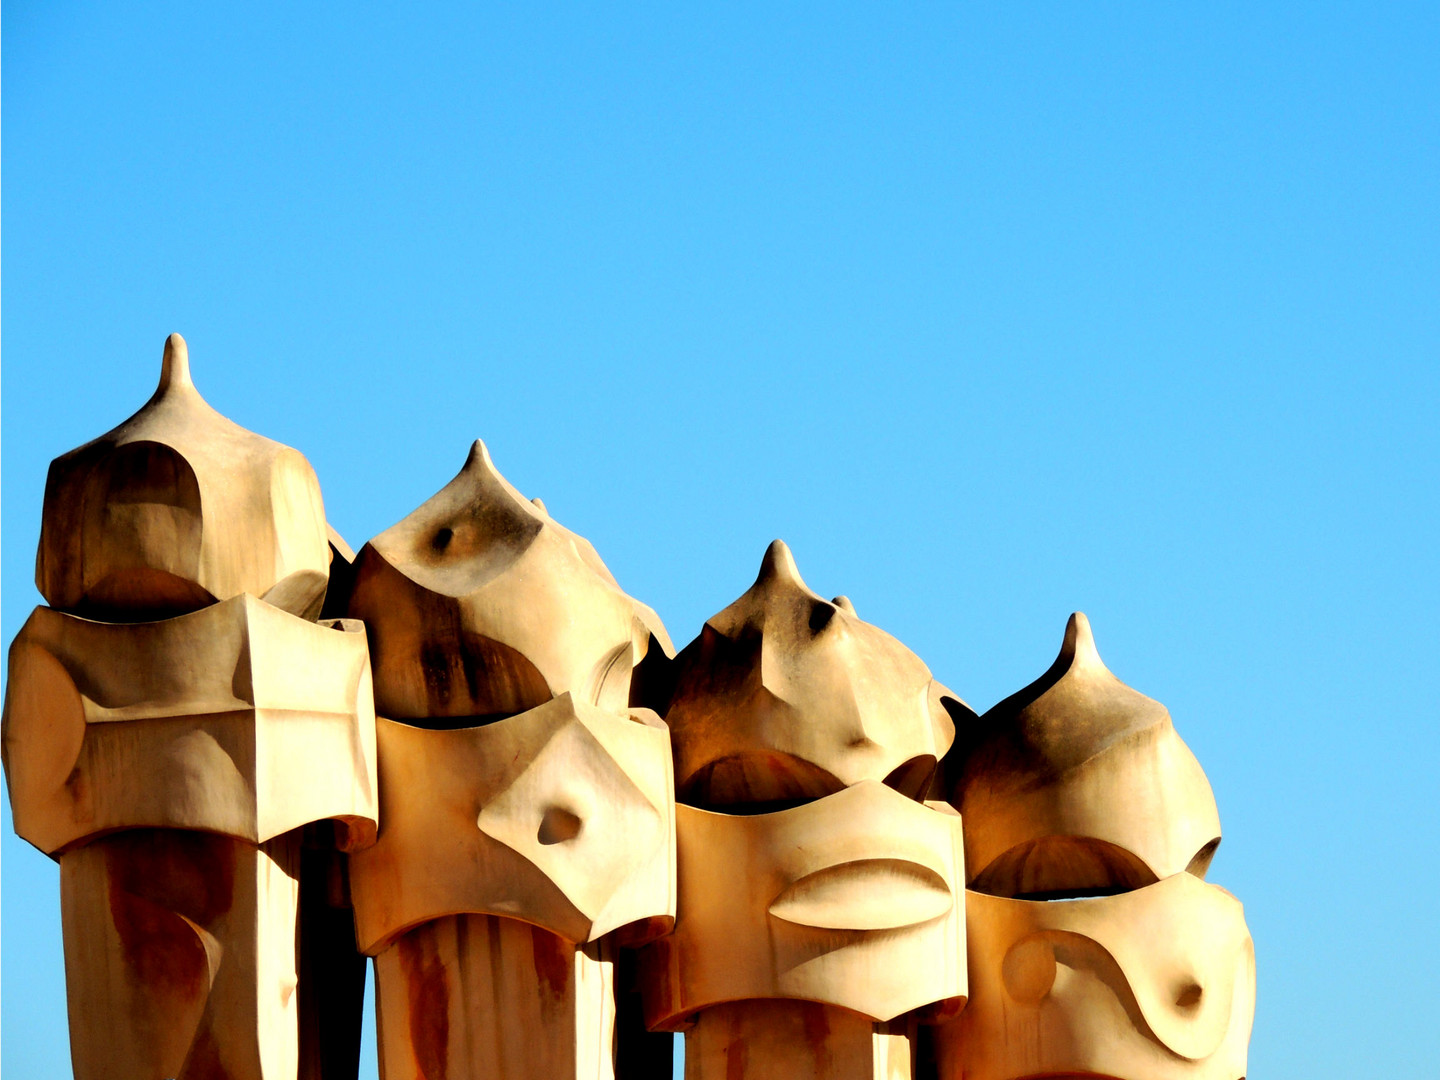 Gaudi on the Roof